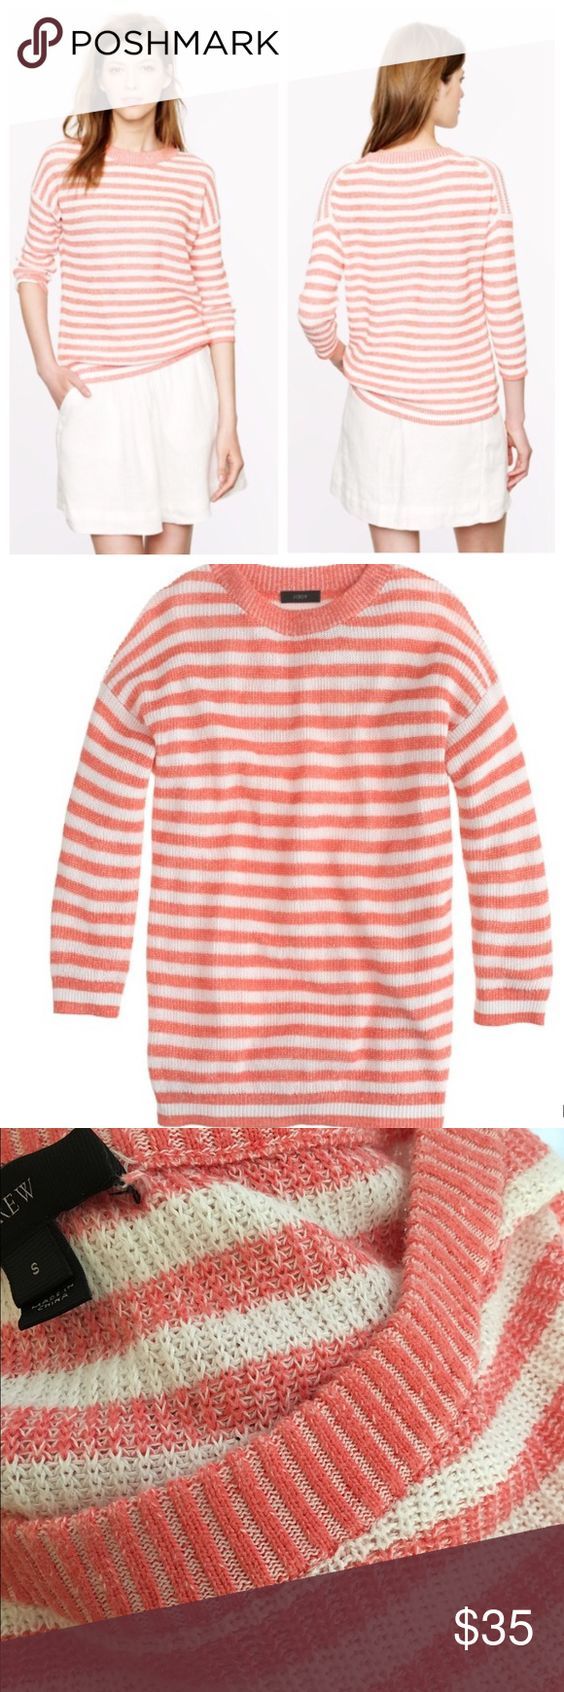 J. Crew heather-stripe sweater Meet the perfectly slouchy, slightly textured linen & cotton sweater we're wearing on chilly summer nights straight through to crisp fall days. Our designers gave a classic stripe a fresh feel with a subtle heathered effect, then tweaked the easy fit with formfitting 3/4 sleeves (so it has a flattering-for-all relaxed drape, but still feels tailored) Relaxed fit. Linen/cotton Hits at hip Rib trim at neck, cuffs & hem Dry clean Salmon/off white color. Minor…